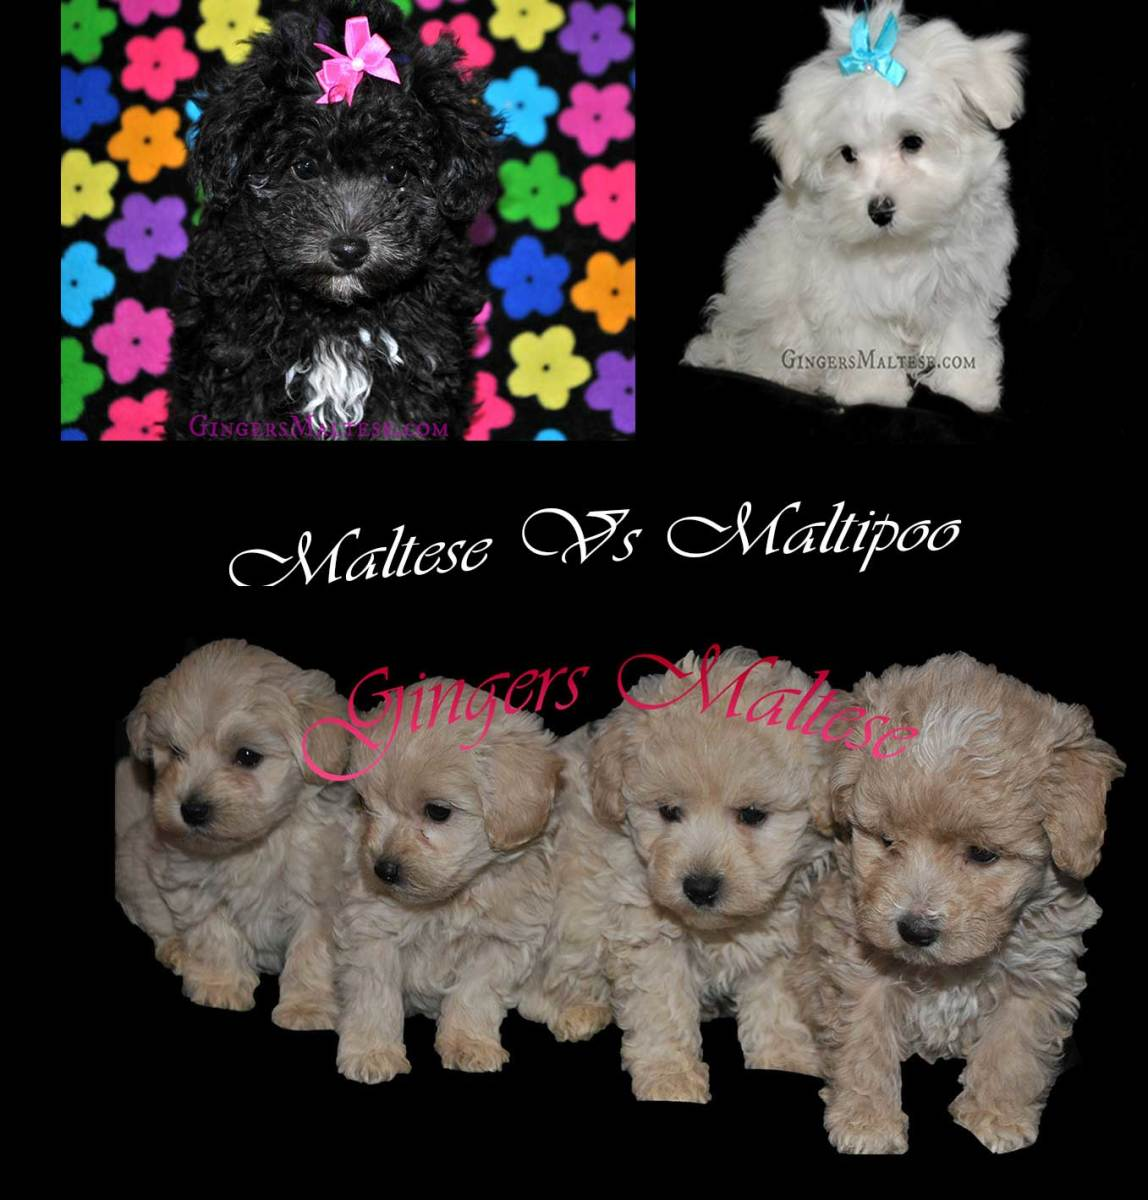 Black and tan puppies are Maltipoo's and the white puppy is a Maltese dog.